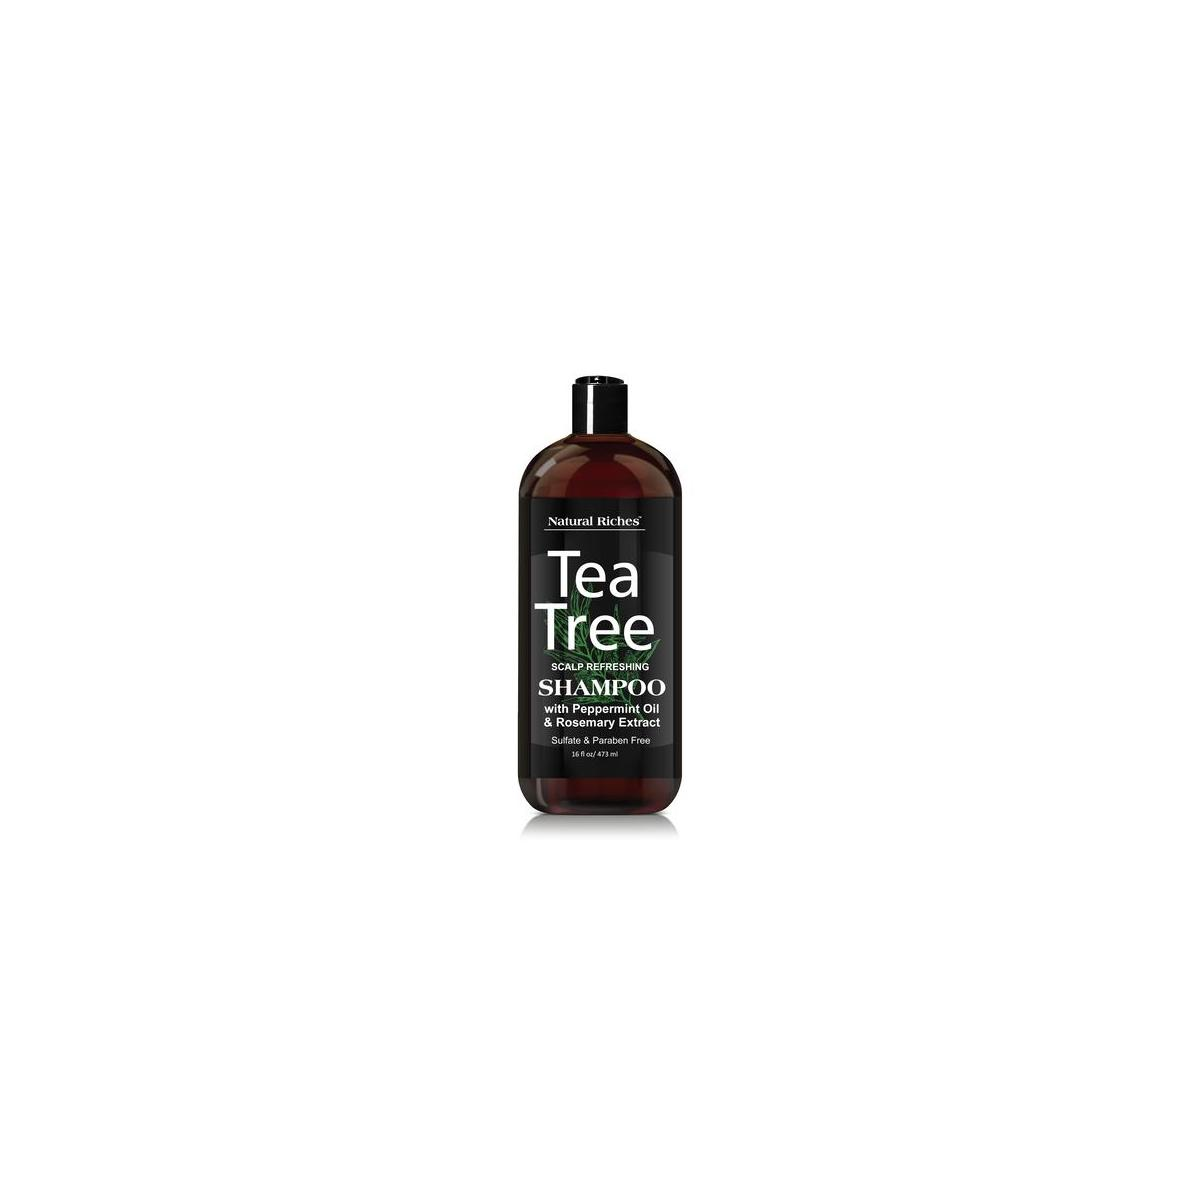 Tea Tree special anti-dandruff Shampoo - with 100% Pure Tea Tree Oil, for Itchy and Dry Scalp, Sulfate Free, Paraben Free. 16 Fl Oz.